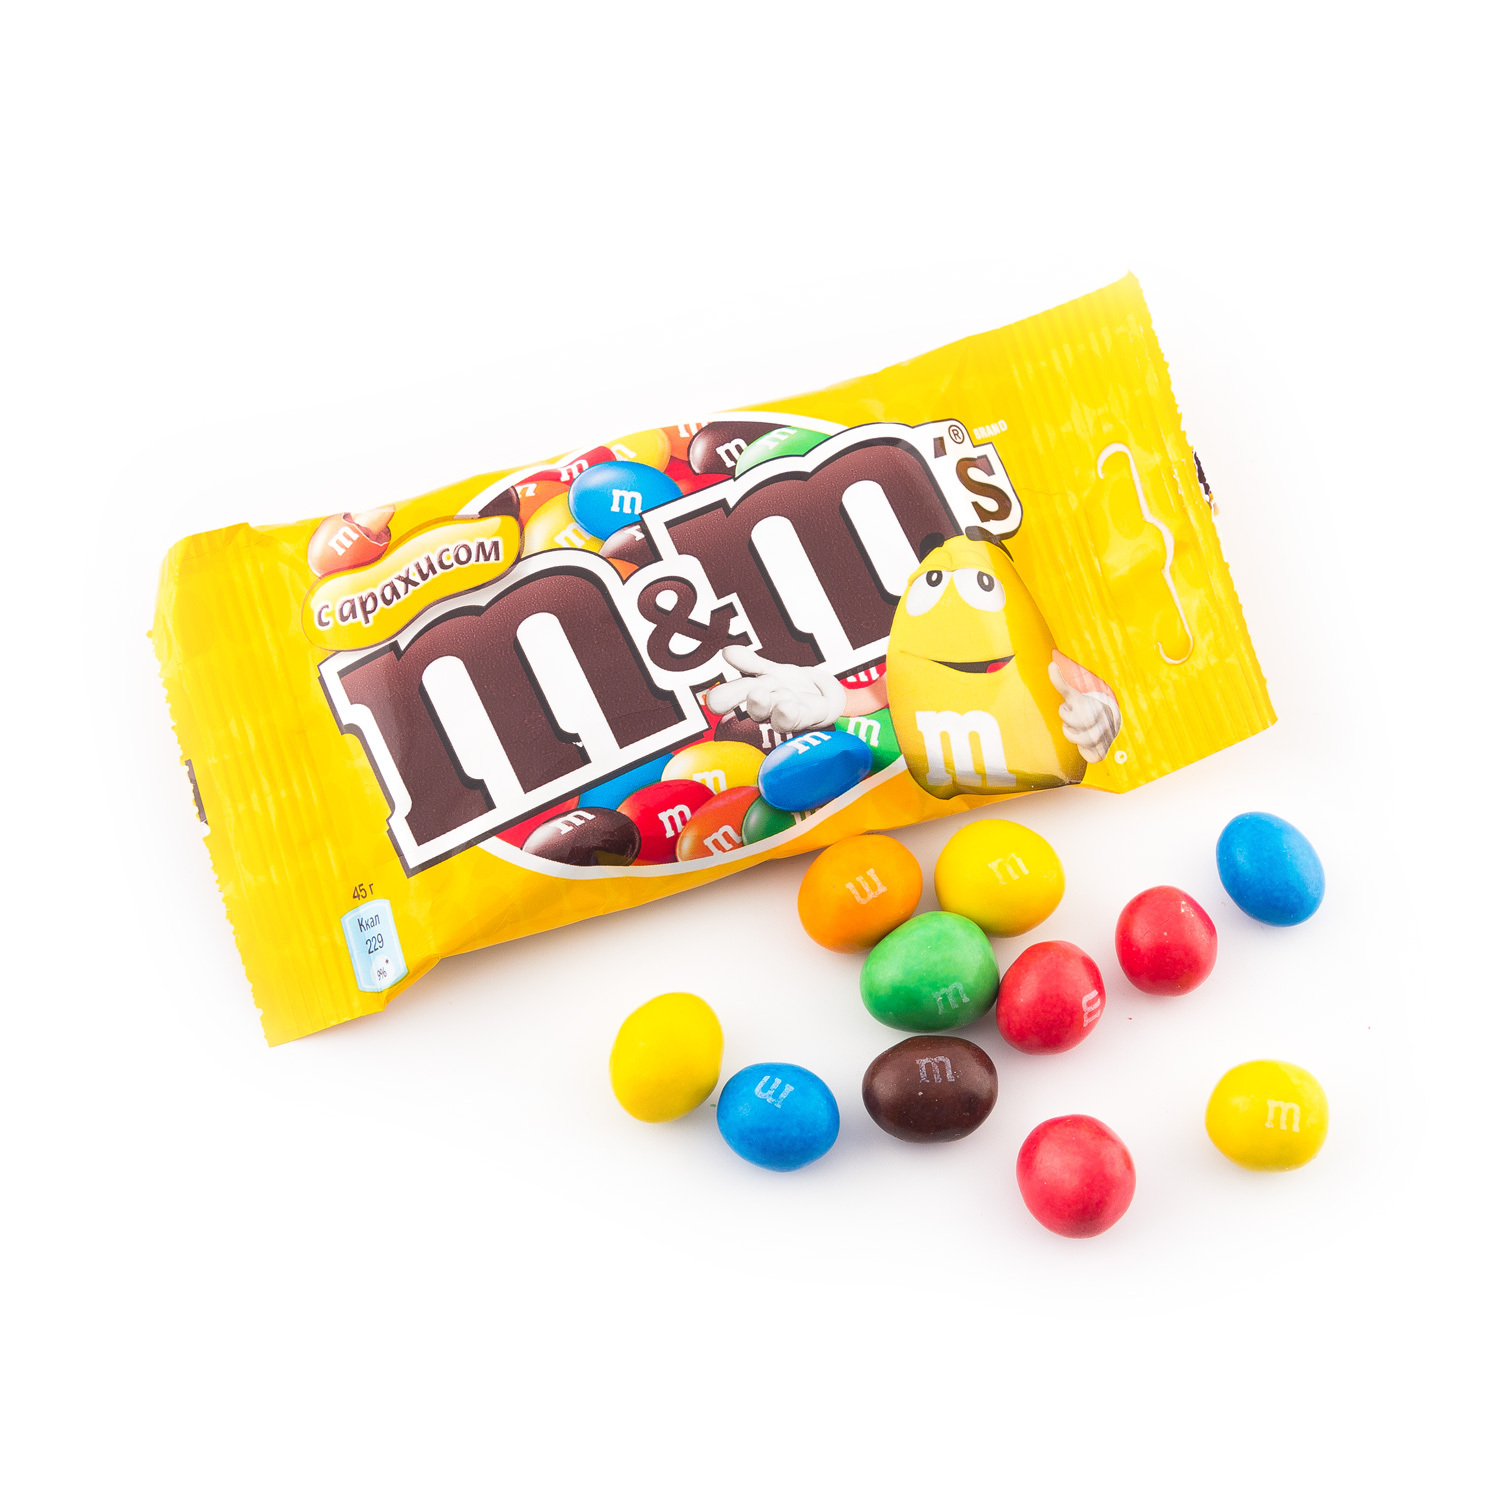 Visit any of our M&M'S World stores for M&M'S fun. We are located in New York, Las Vegas, Orlando, London and Shanghai.